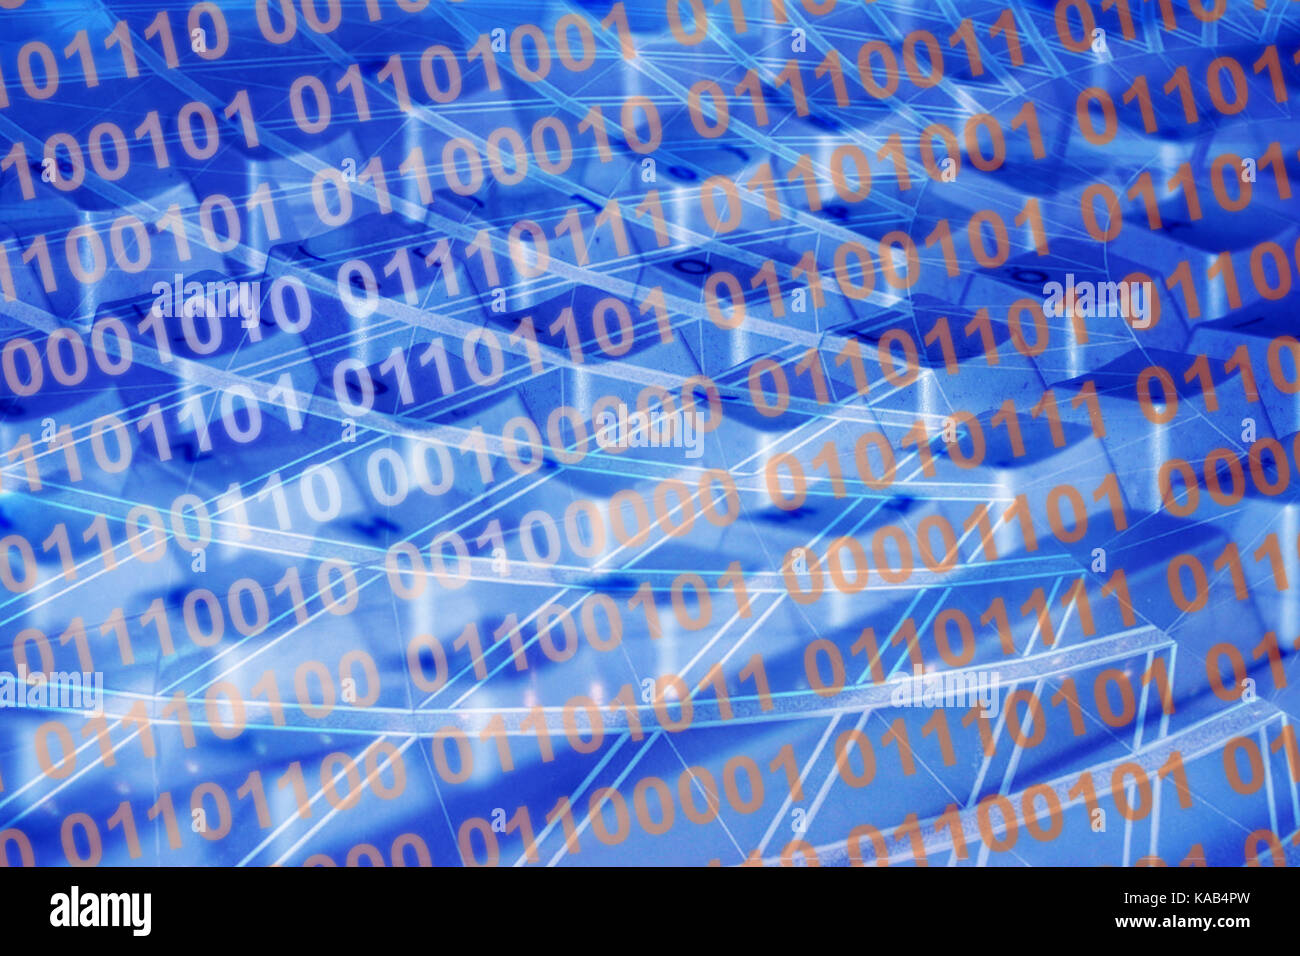 Background binary code in blue with keyboard and lines -- Hintergrund Binärcode in blau mit Tastatur und Linien - Stock Image